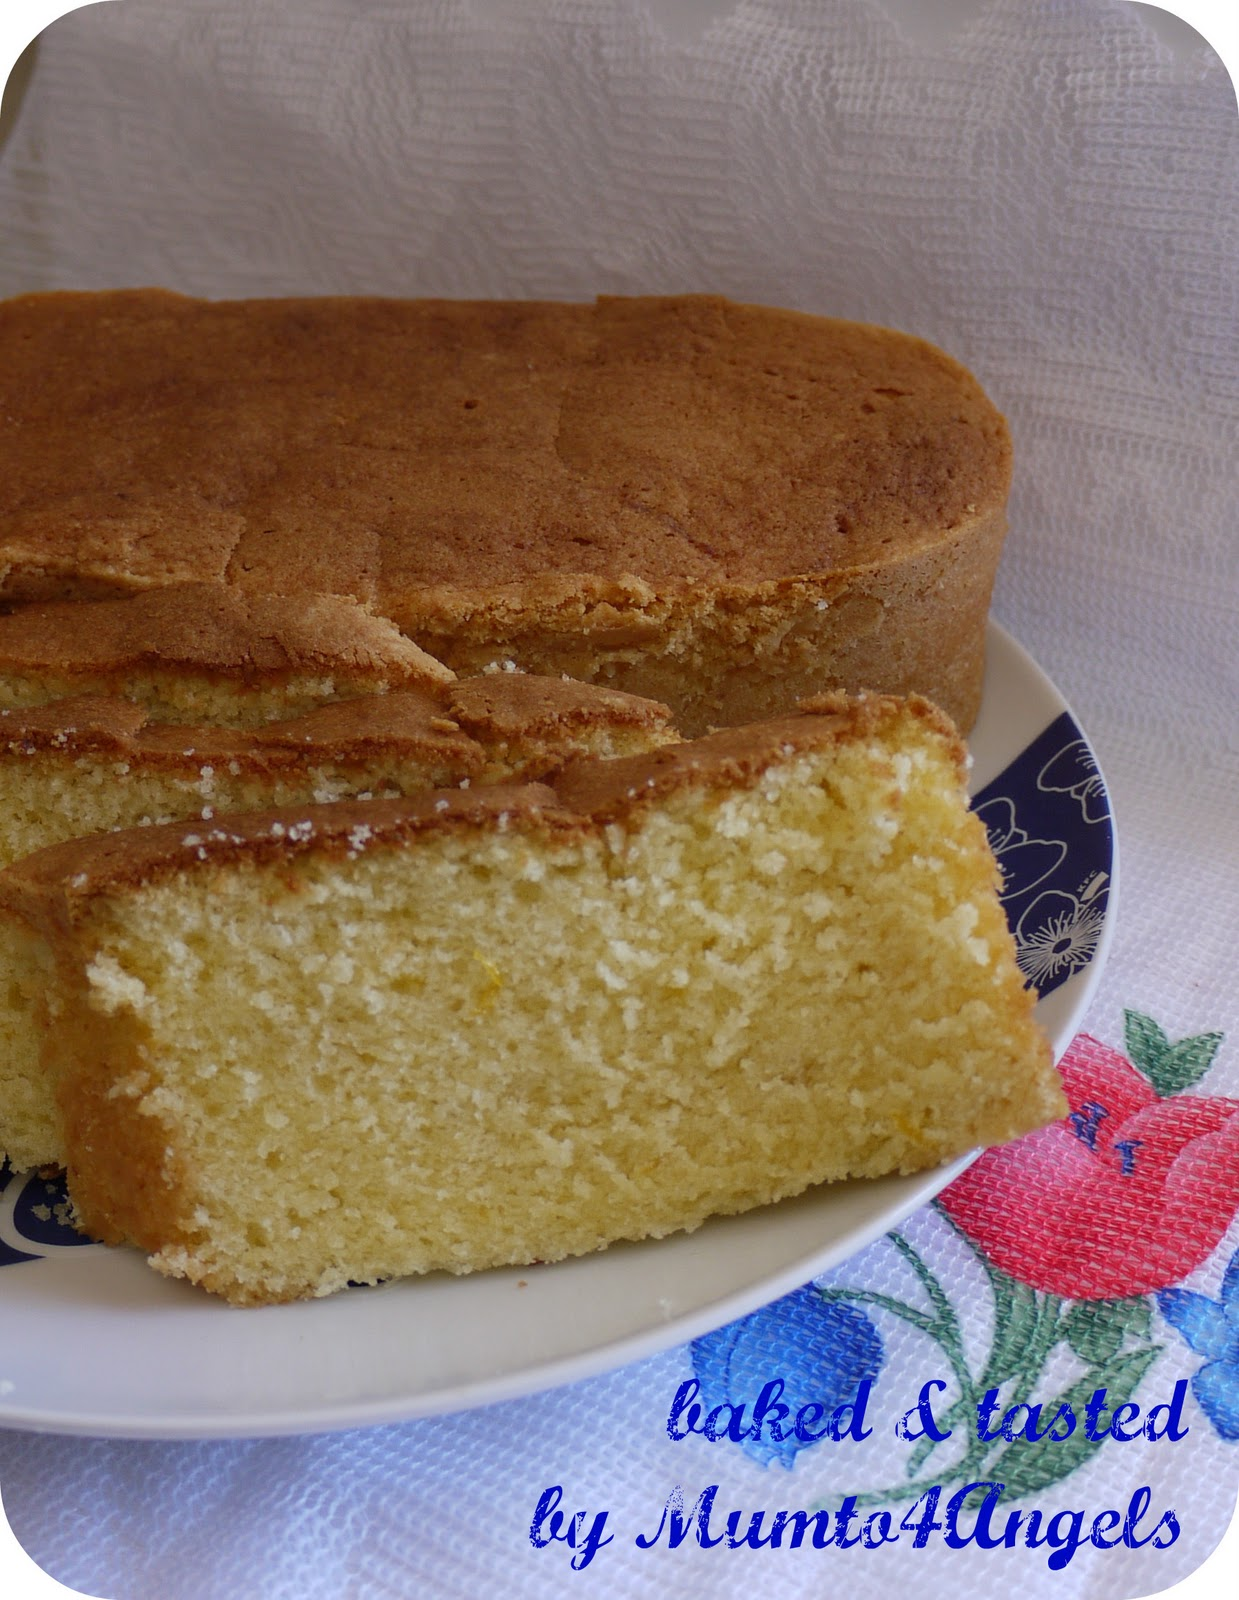 Lemon Pound Cake Made With Philadelphia Brand Cream Cheese